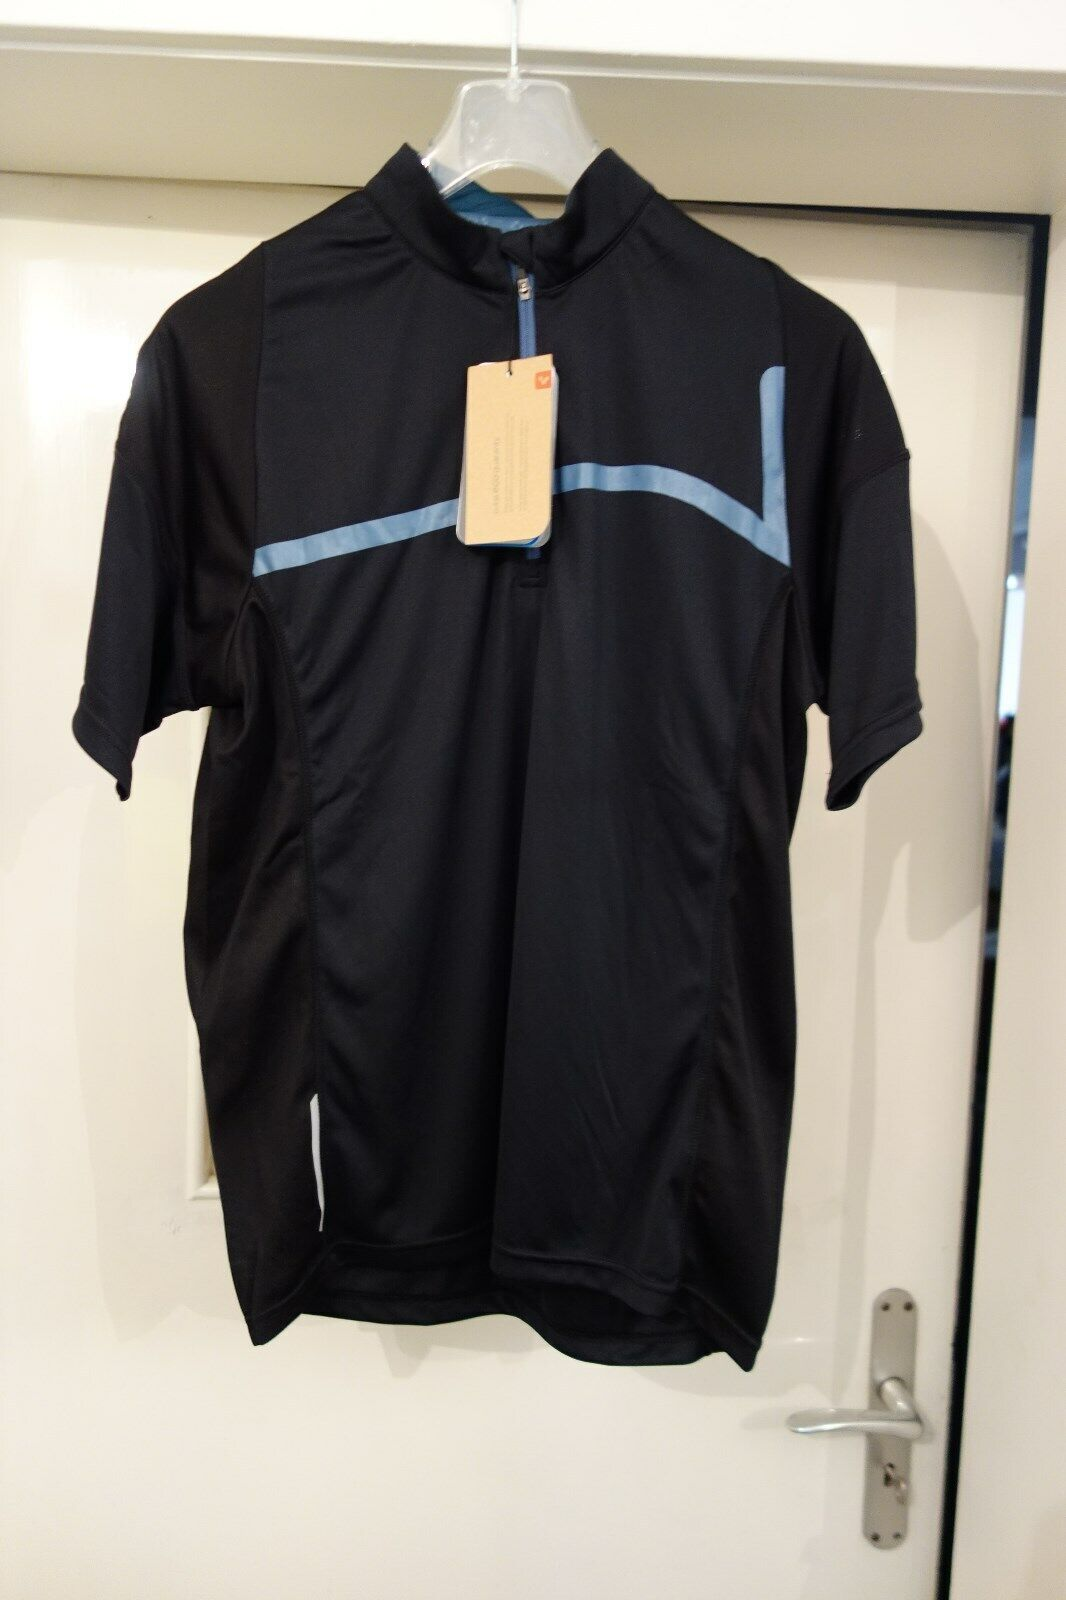 Cube Motion Line JERSEY S S short Sleeve, SIZE M, Article Number  10809, Men